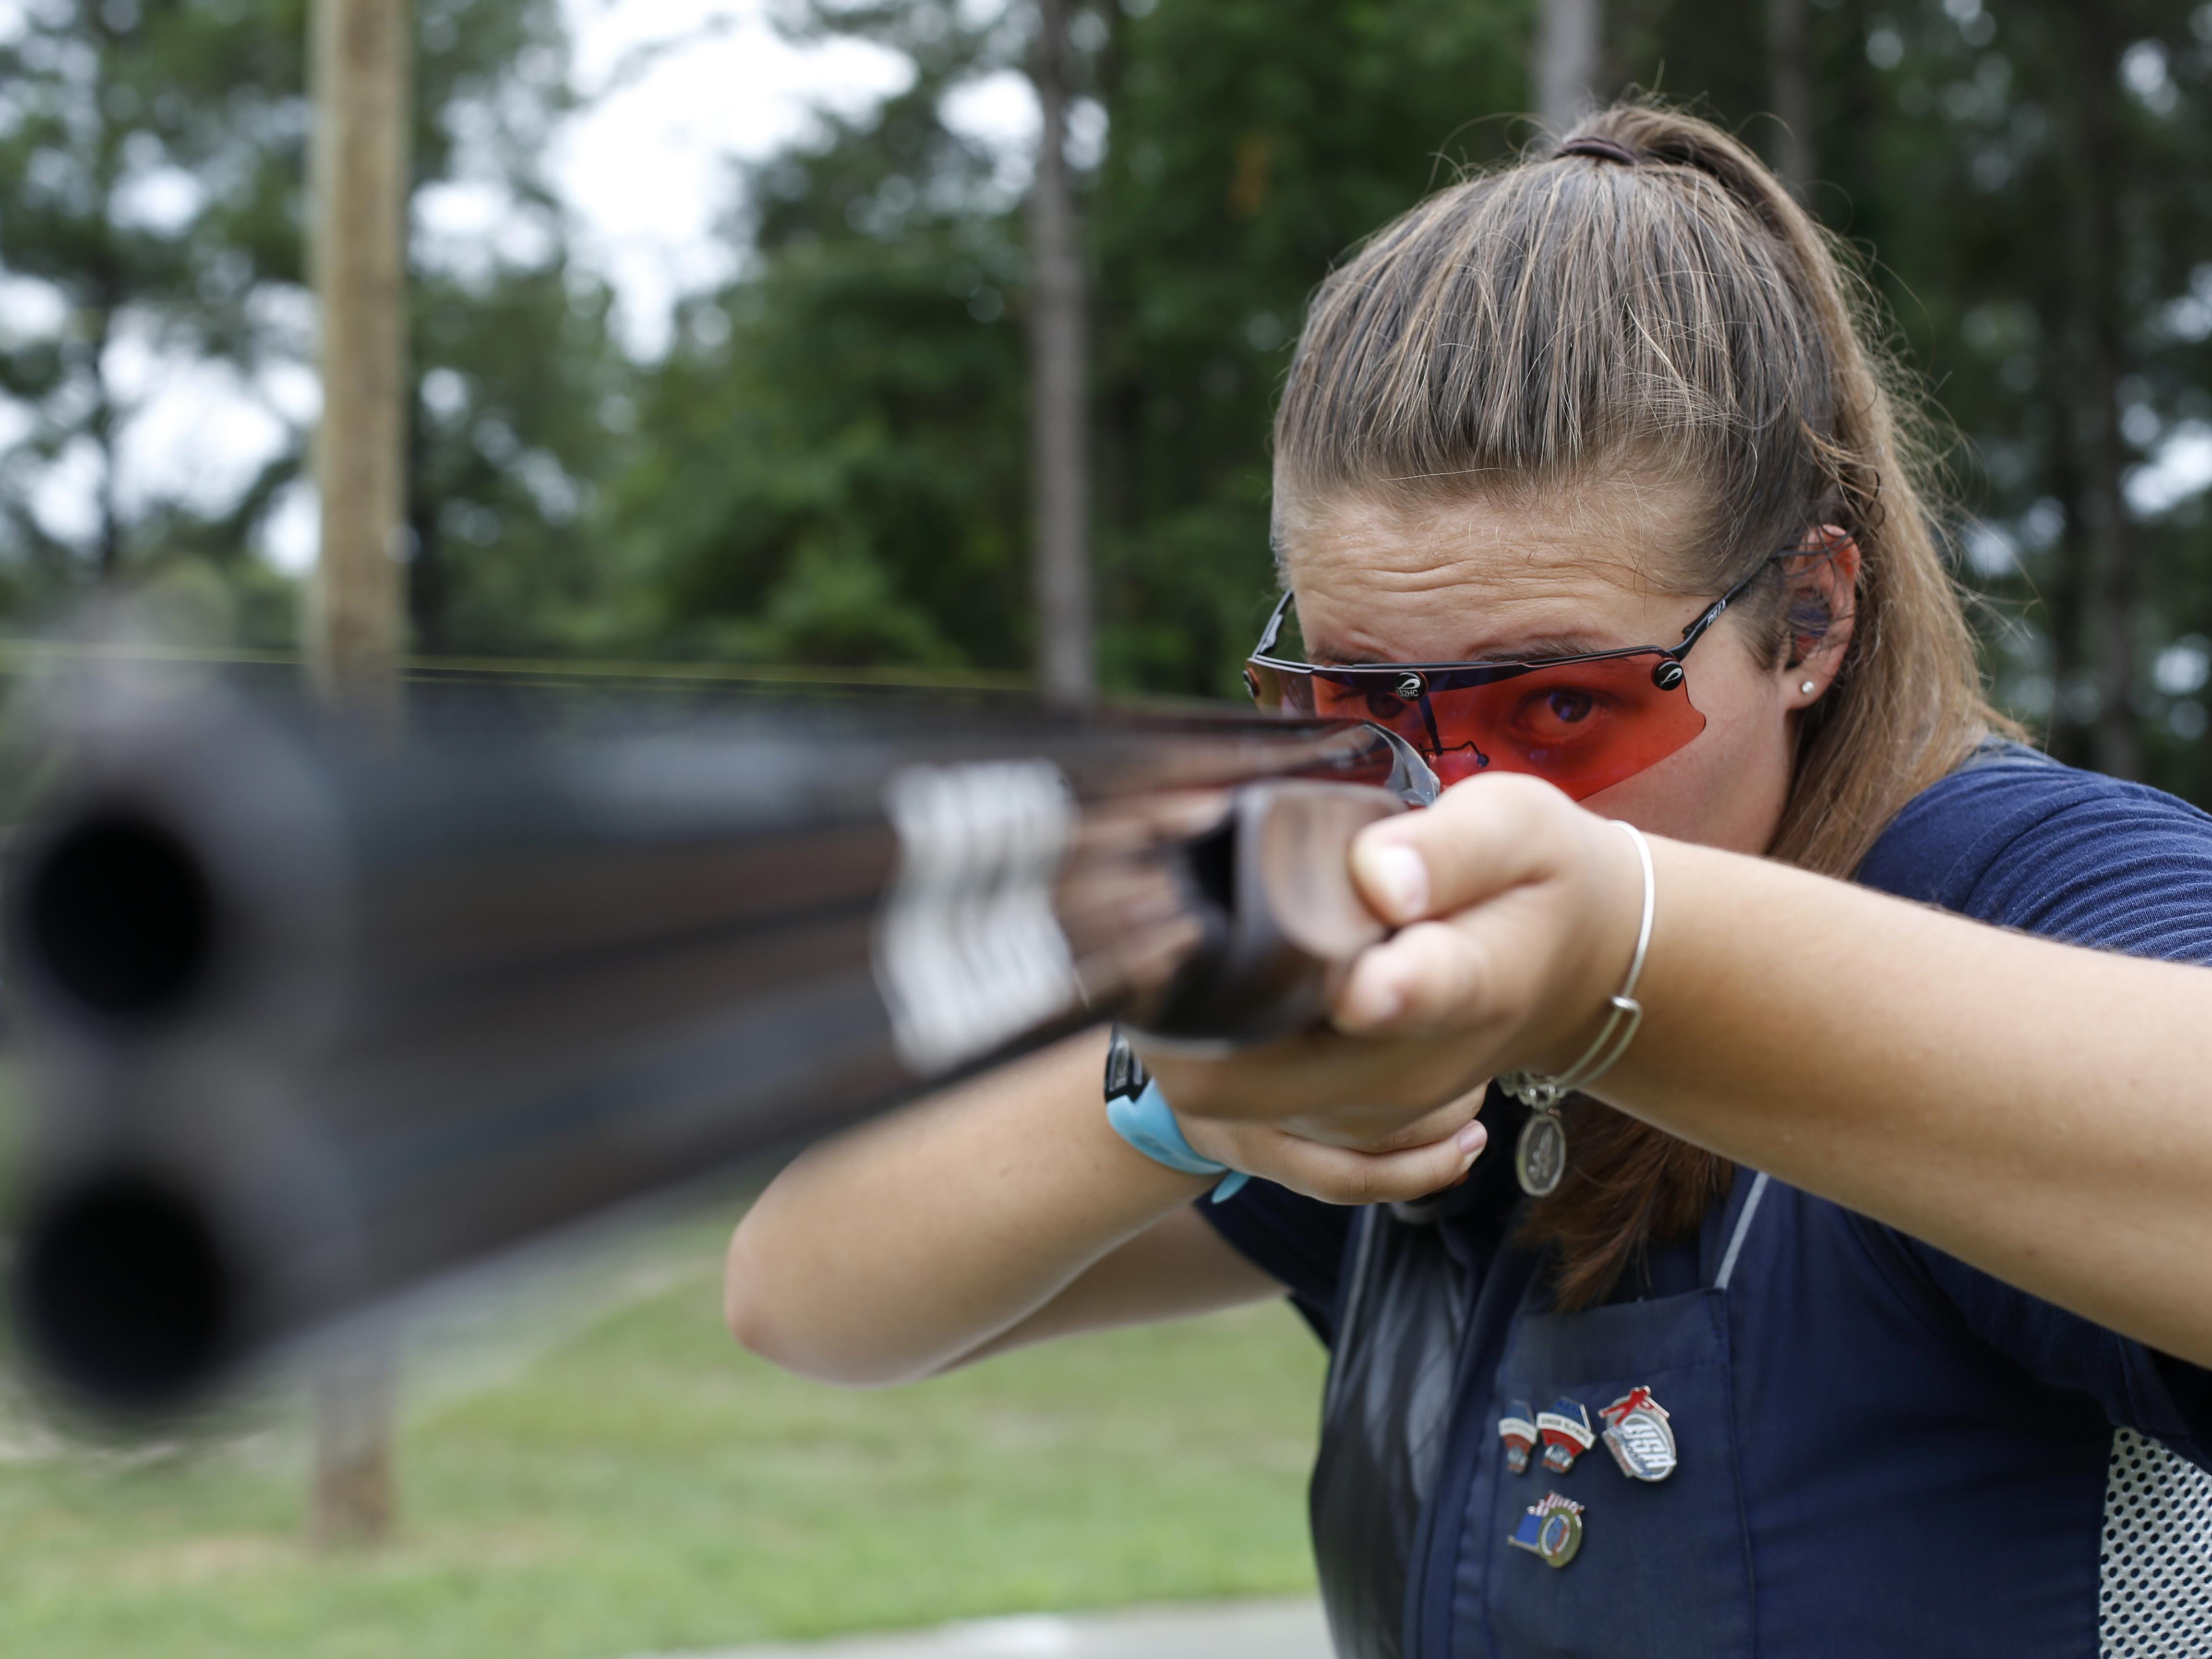 Abby Blakeley travels from her home in Tallahassee to the Bridge Creek Clays South Georgia Youth Shooting Club as many as four times a week to practice on the clay pigeon range there, a 140-mile round trip.